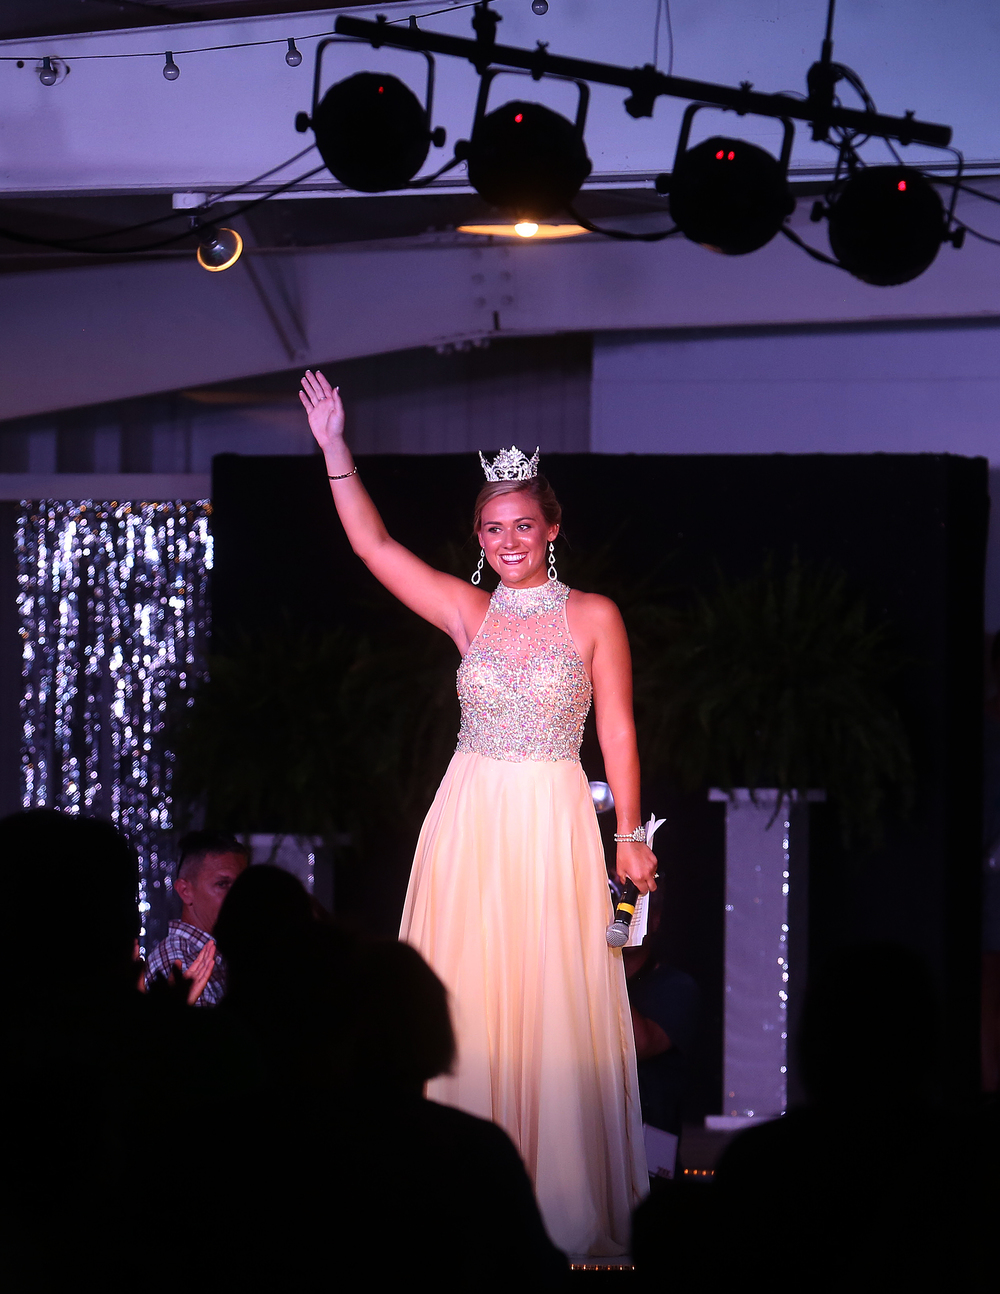 2015 Fair Queen Megan Urbas waves for the final time onstage moments after her final farewell Wednesday night. David Spencer/The State Journal-Register